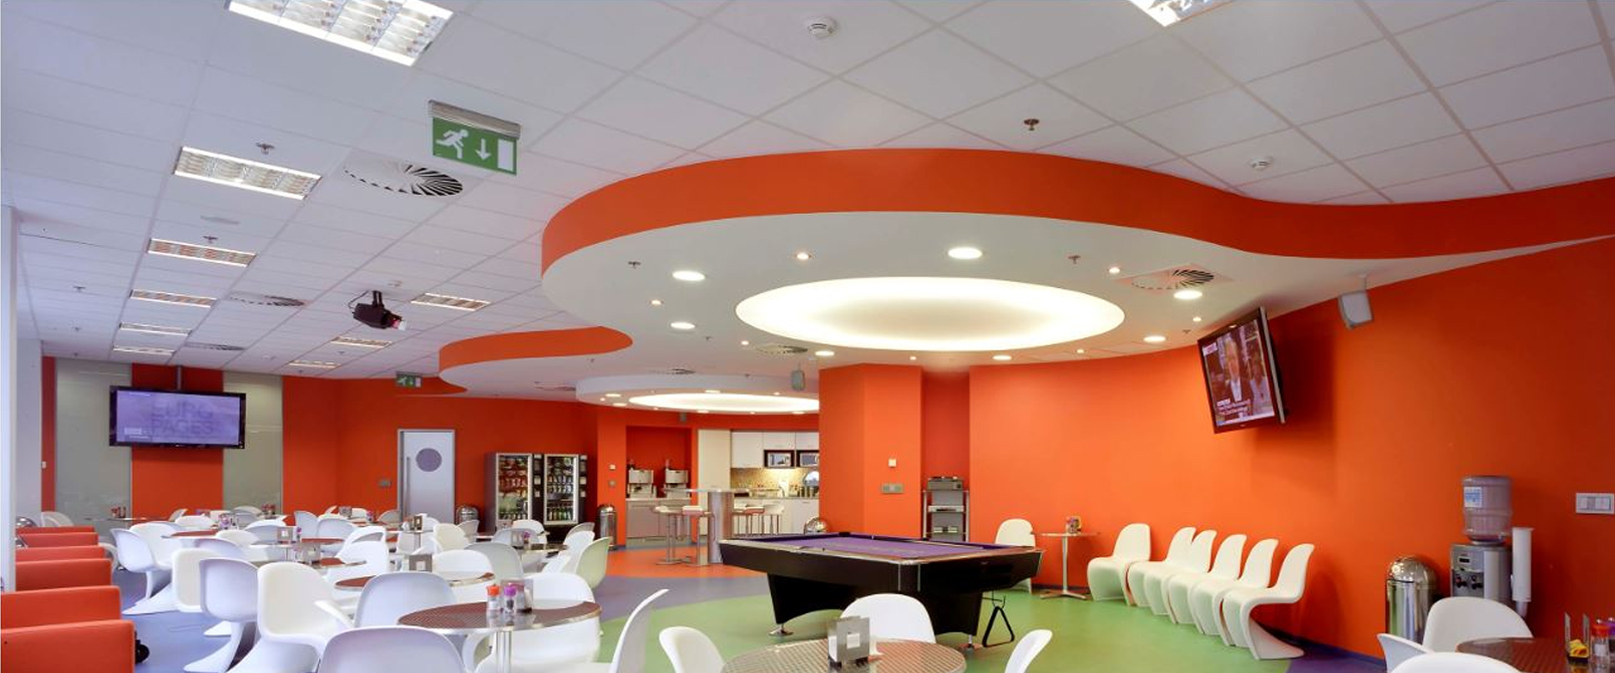 Office Ceiling Designs